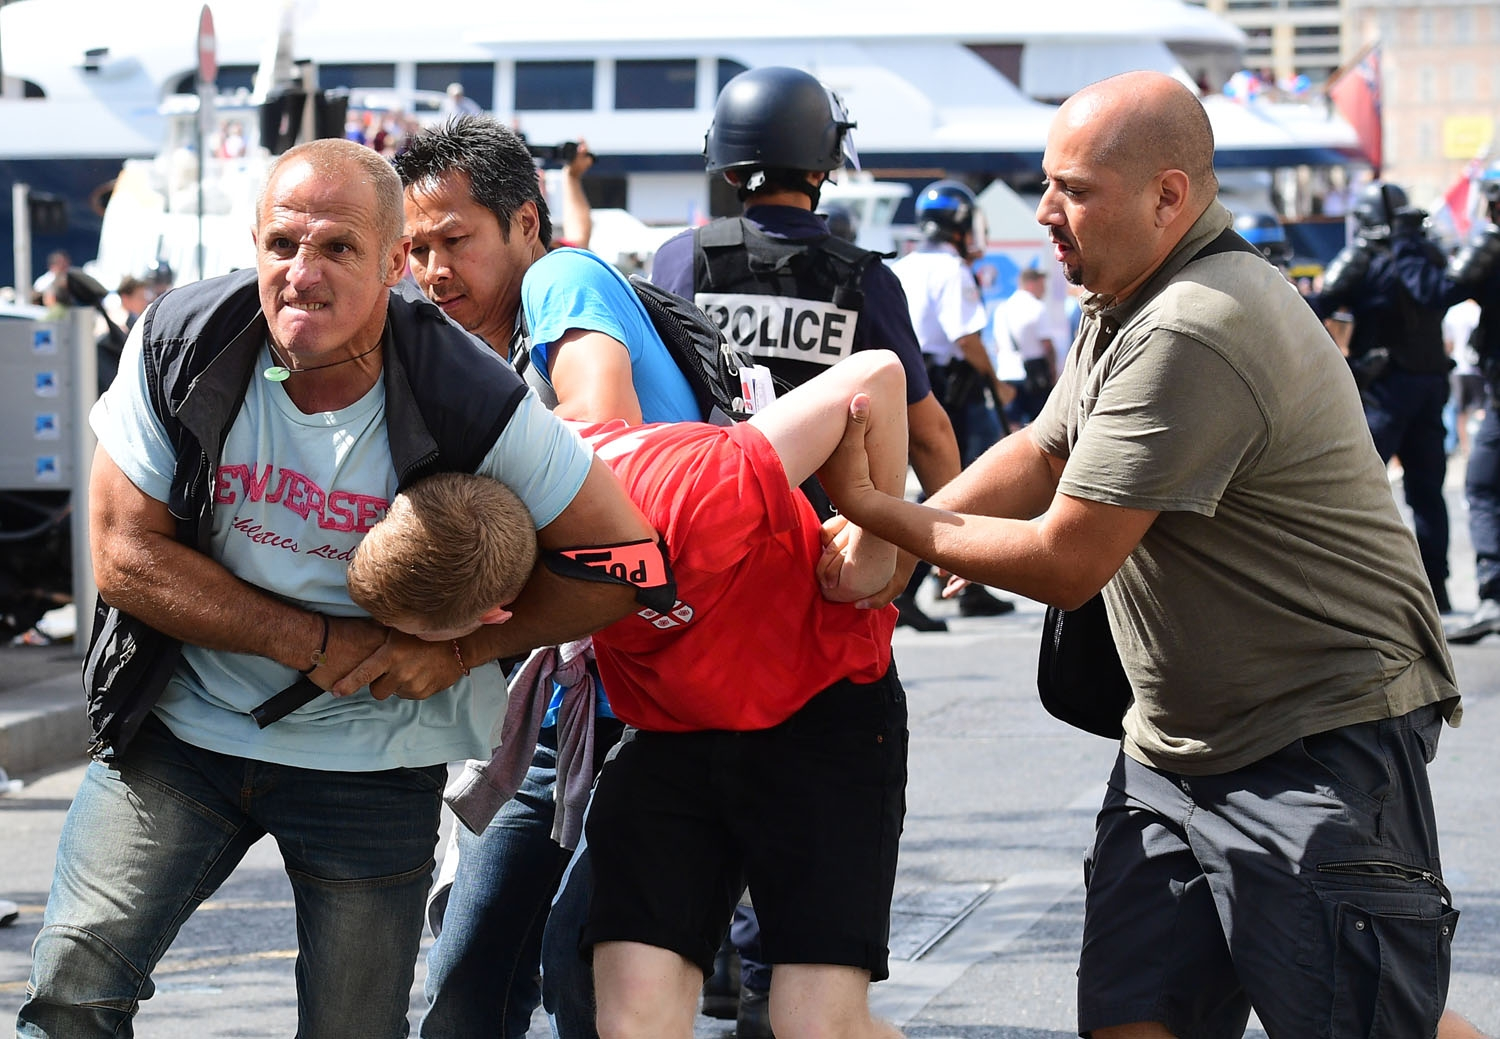 An England fan (C) is detained by police personnel following clashes between England fans and police in the city of Marseille, southern France, on June 11, 2016